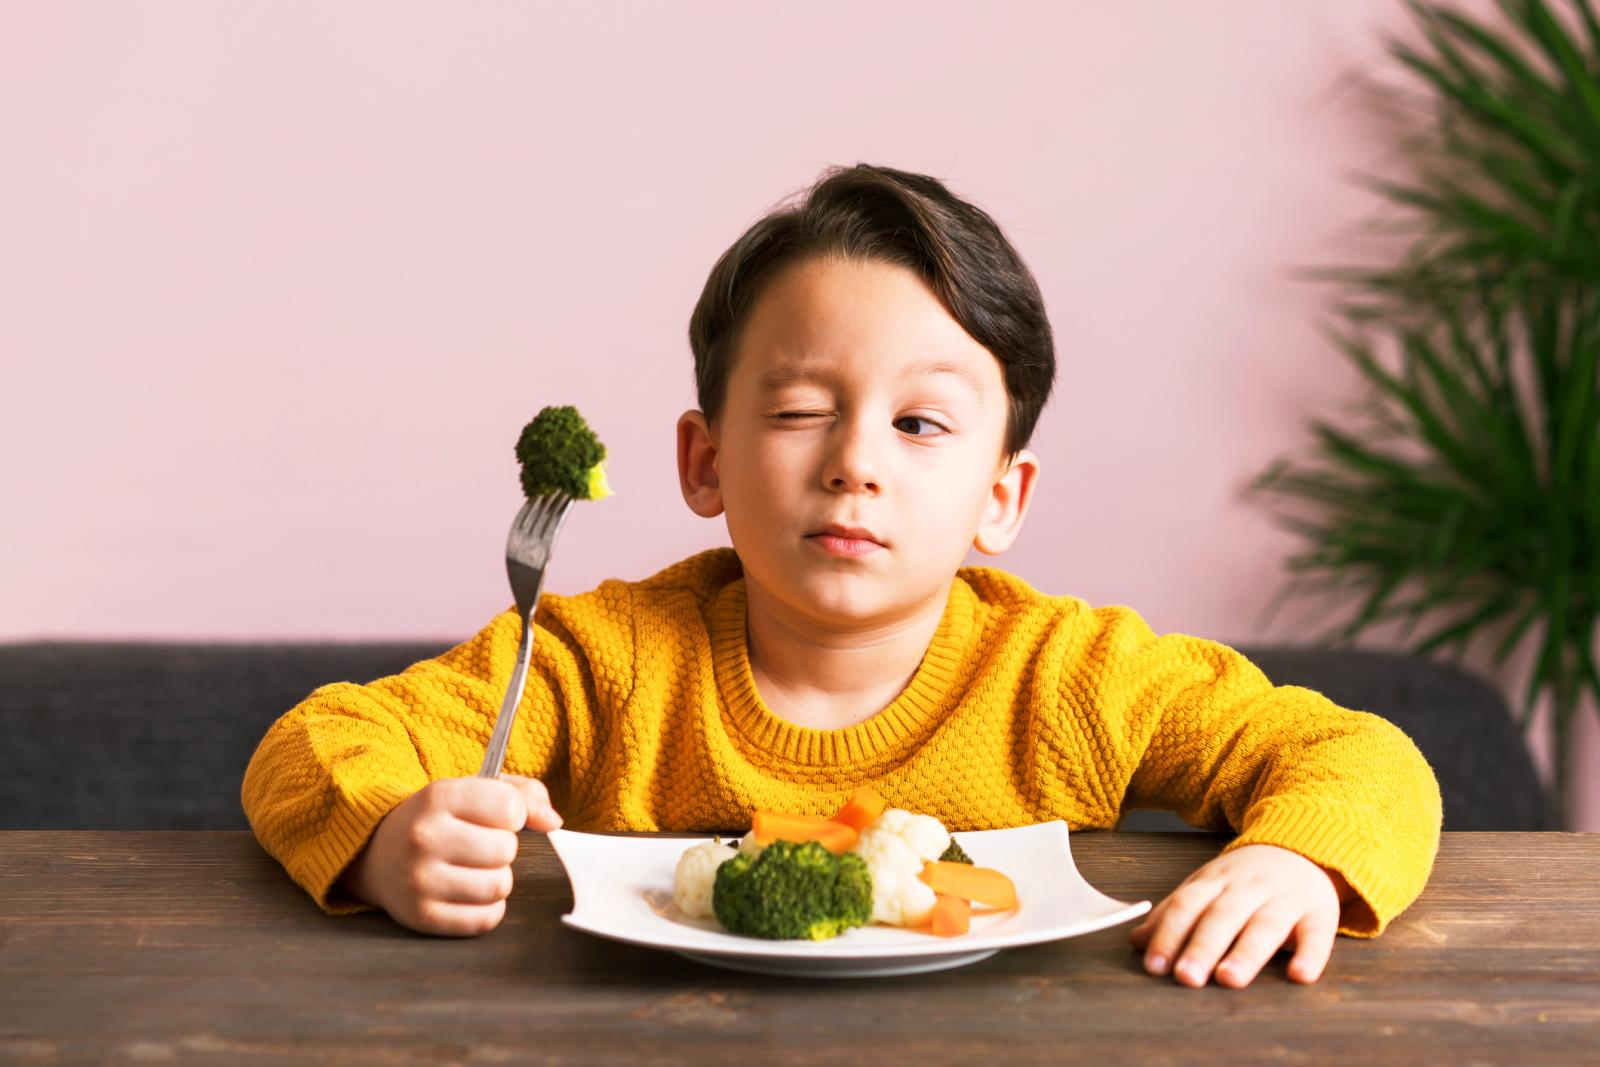 Kid eating a plate full of vegetables